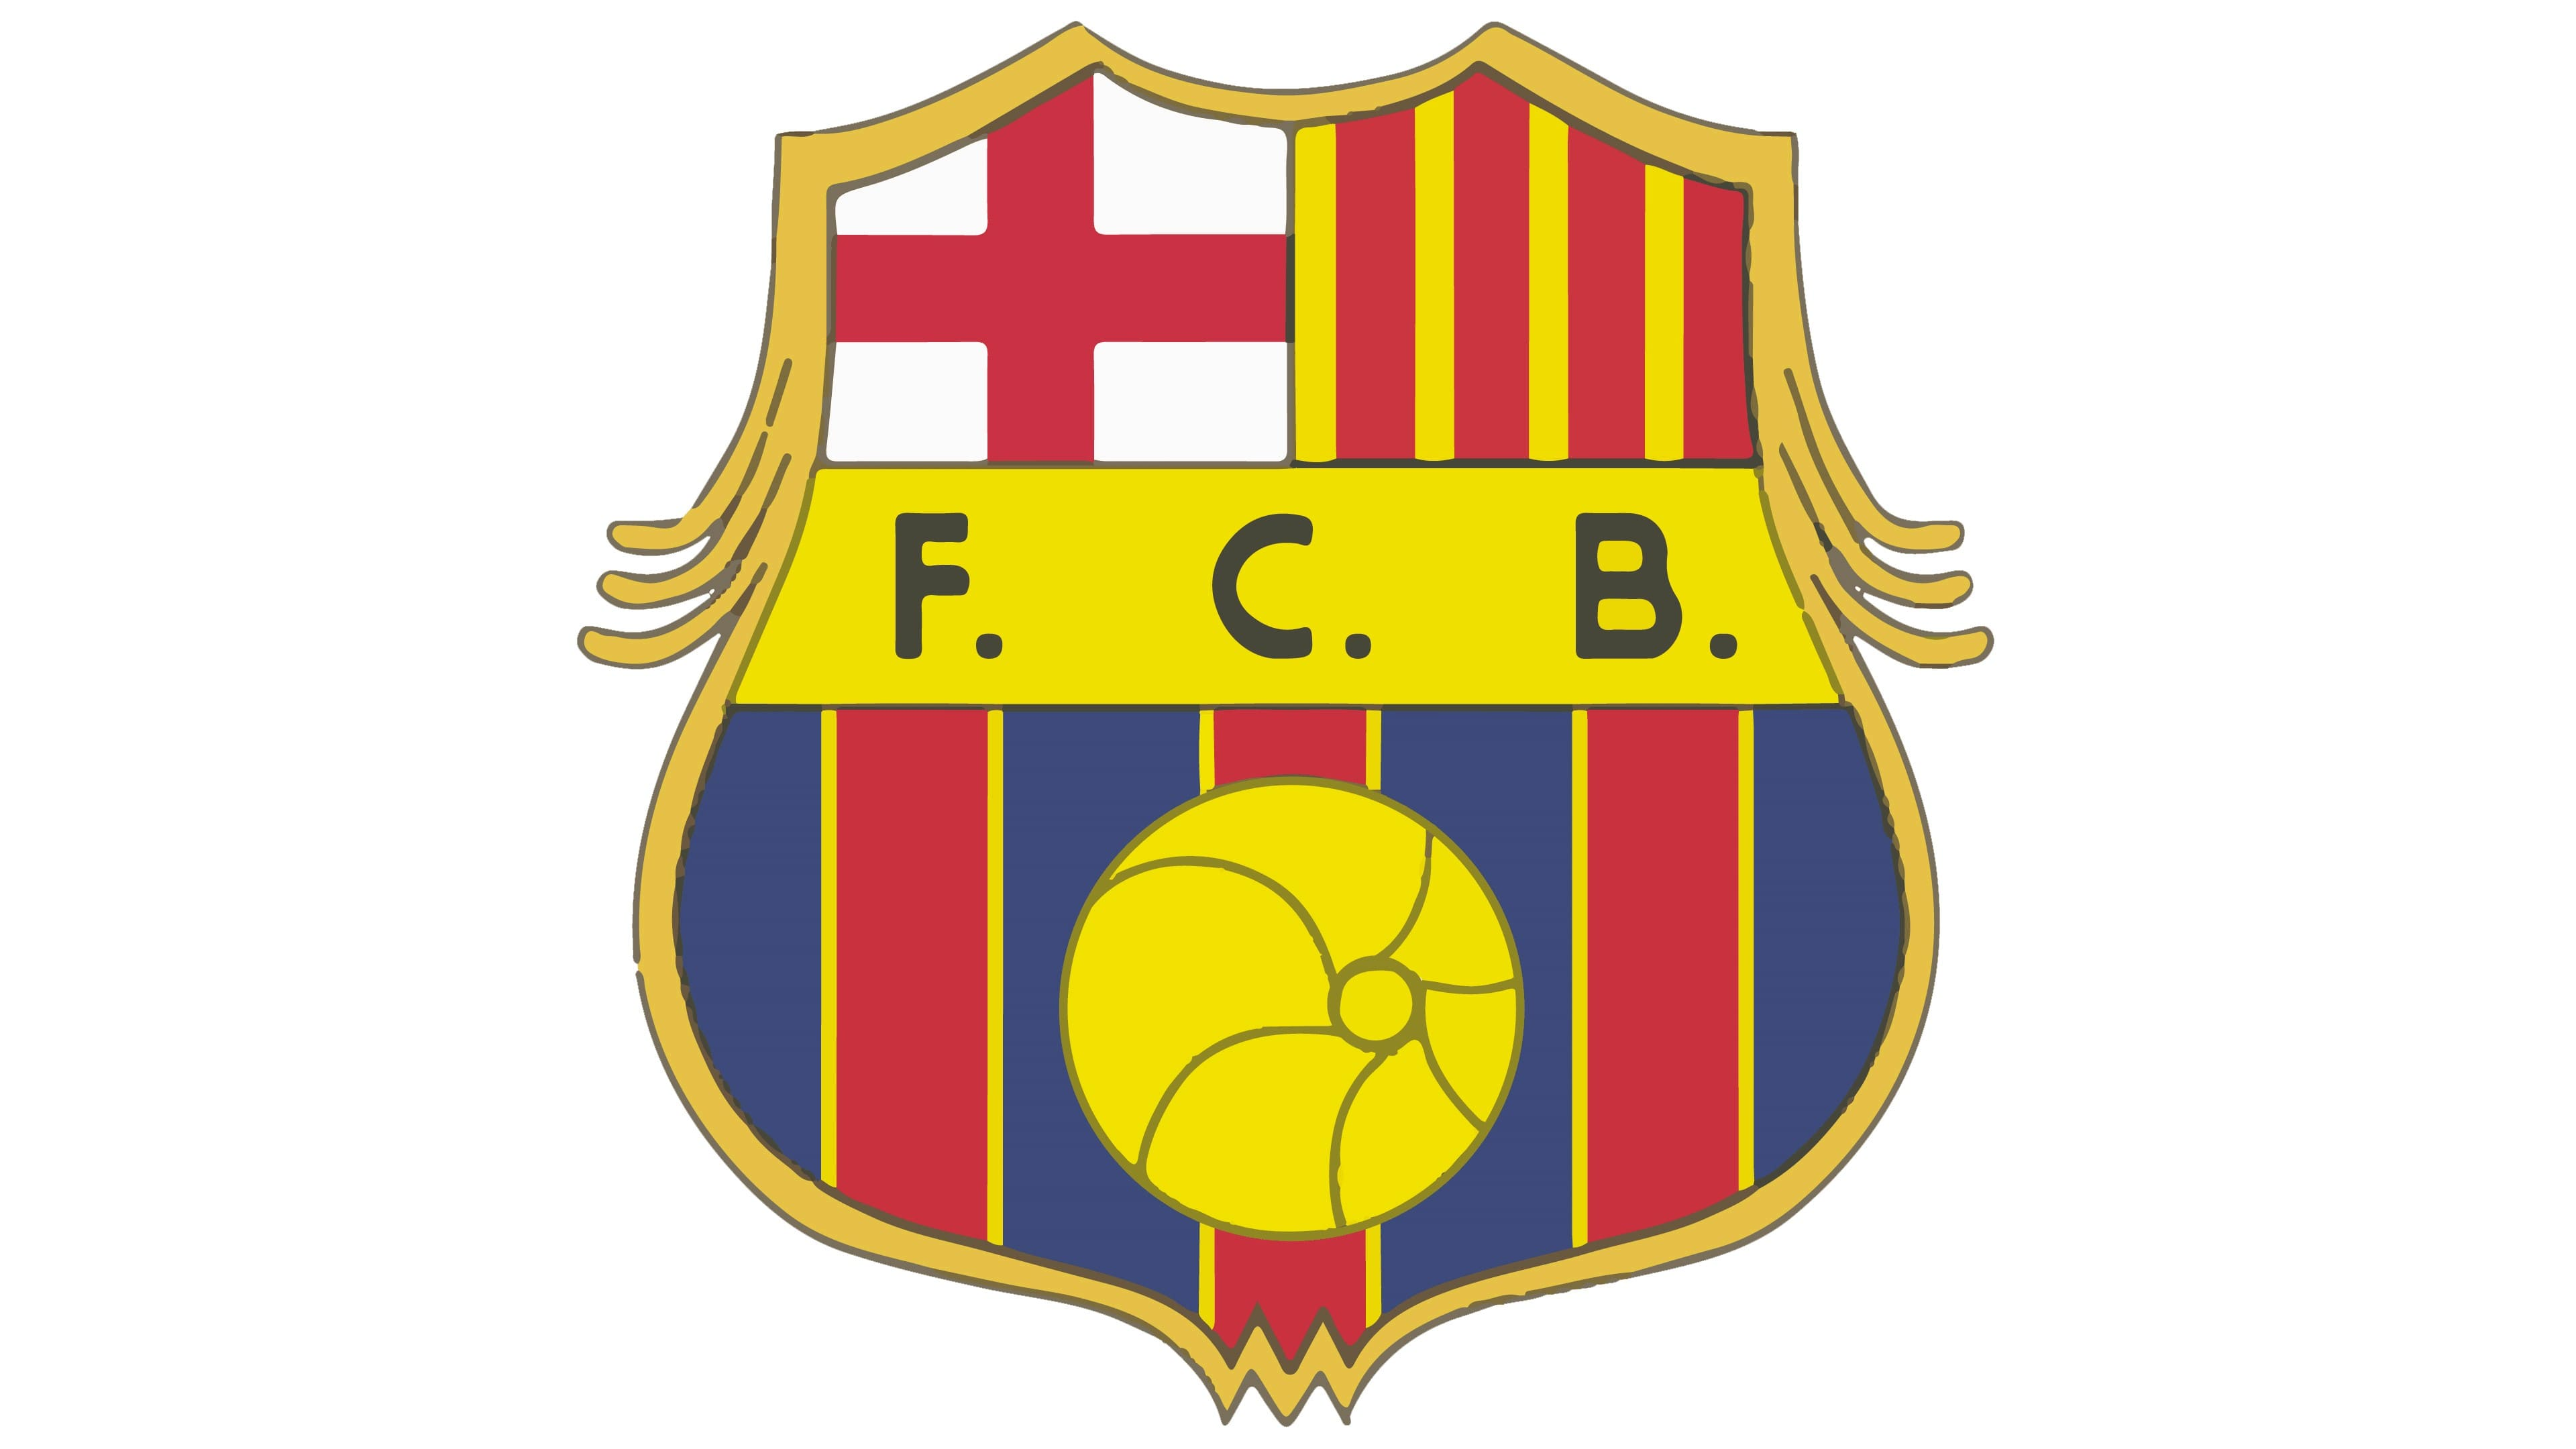 barcelona logo fc and symbol meaning history png barcelona logo fc and symbol meaning